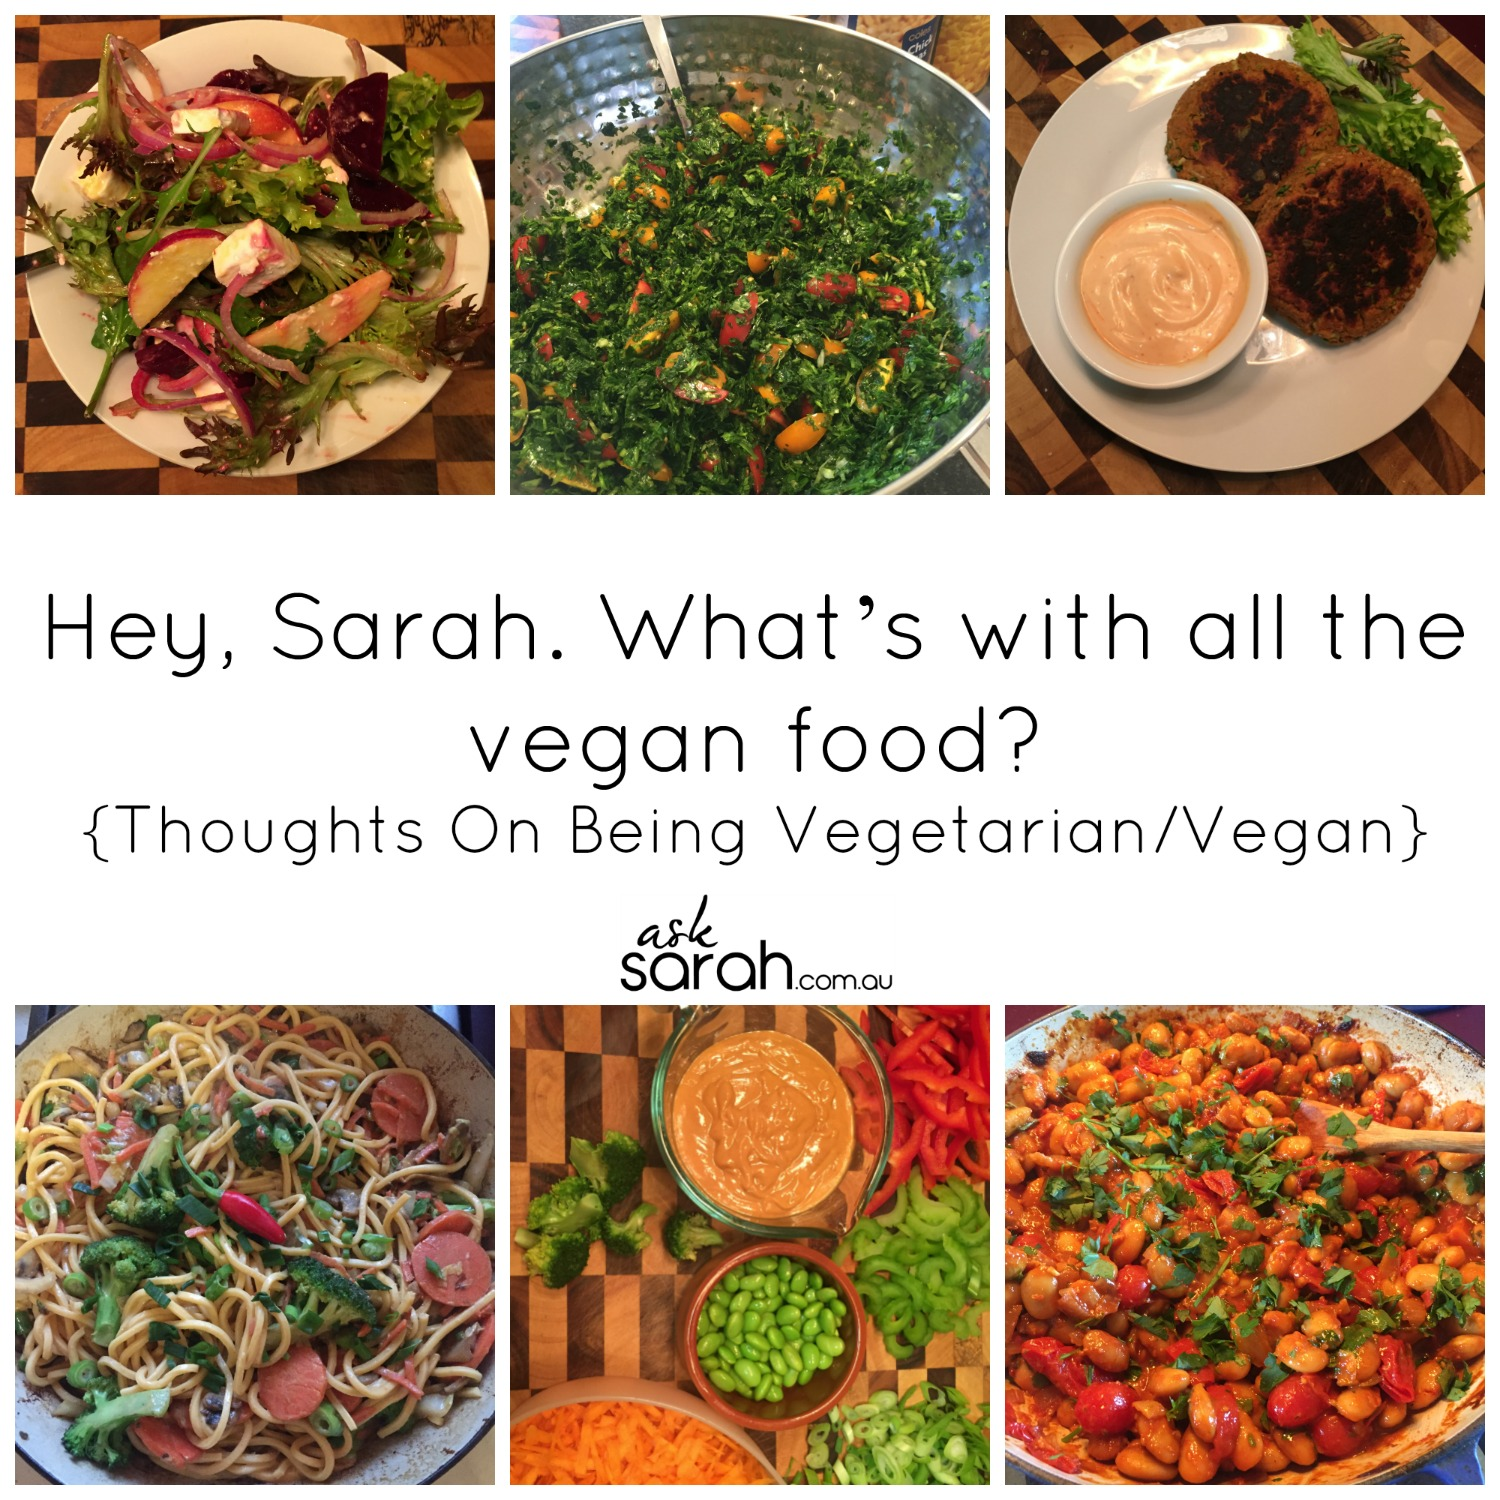 Food: Hey, Sarah. What's with all the vegan food? {Thoughts On Being Vegetarian/Vegan}